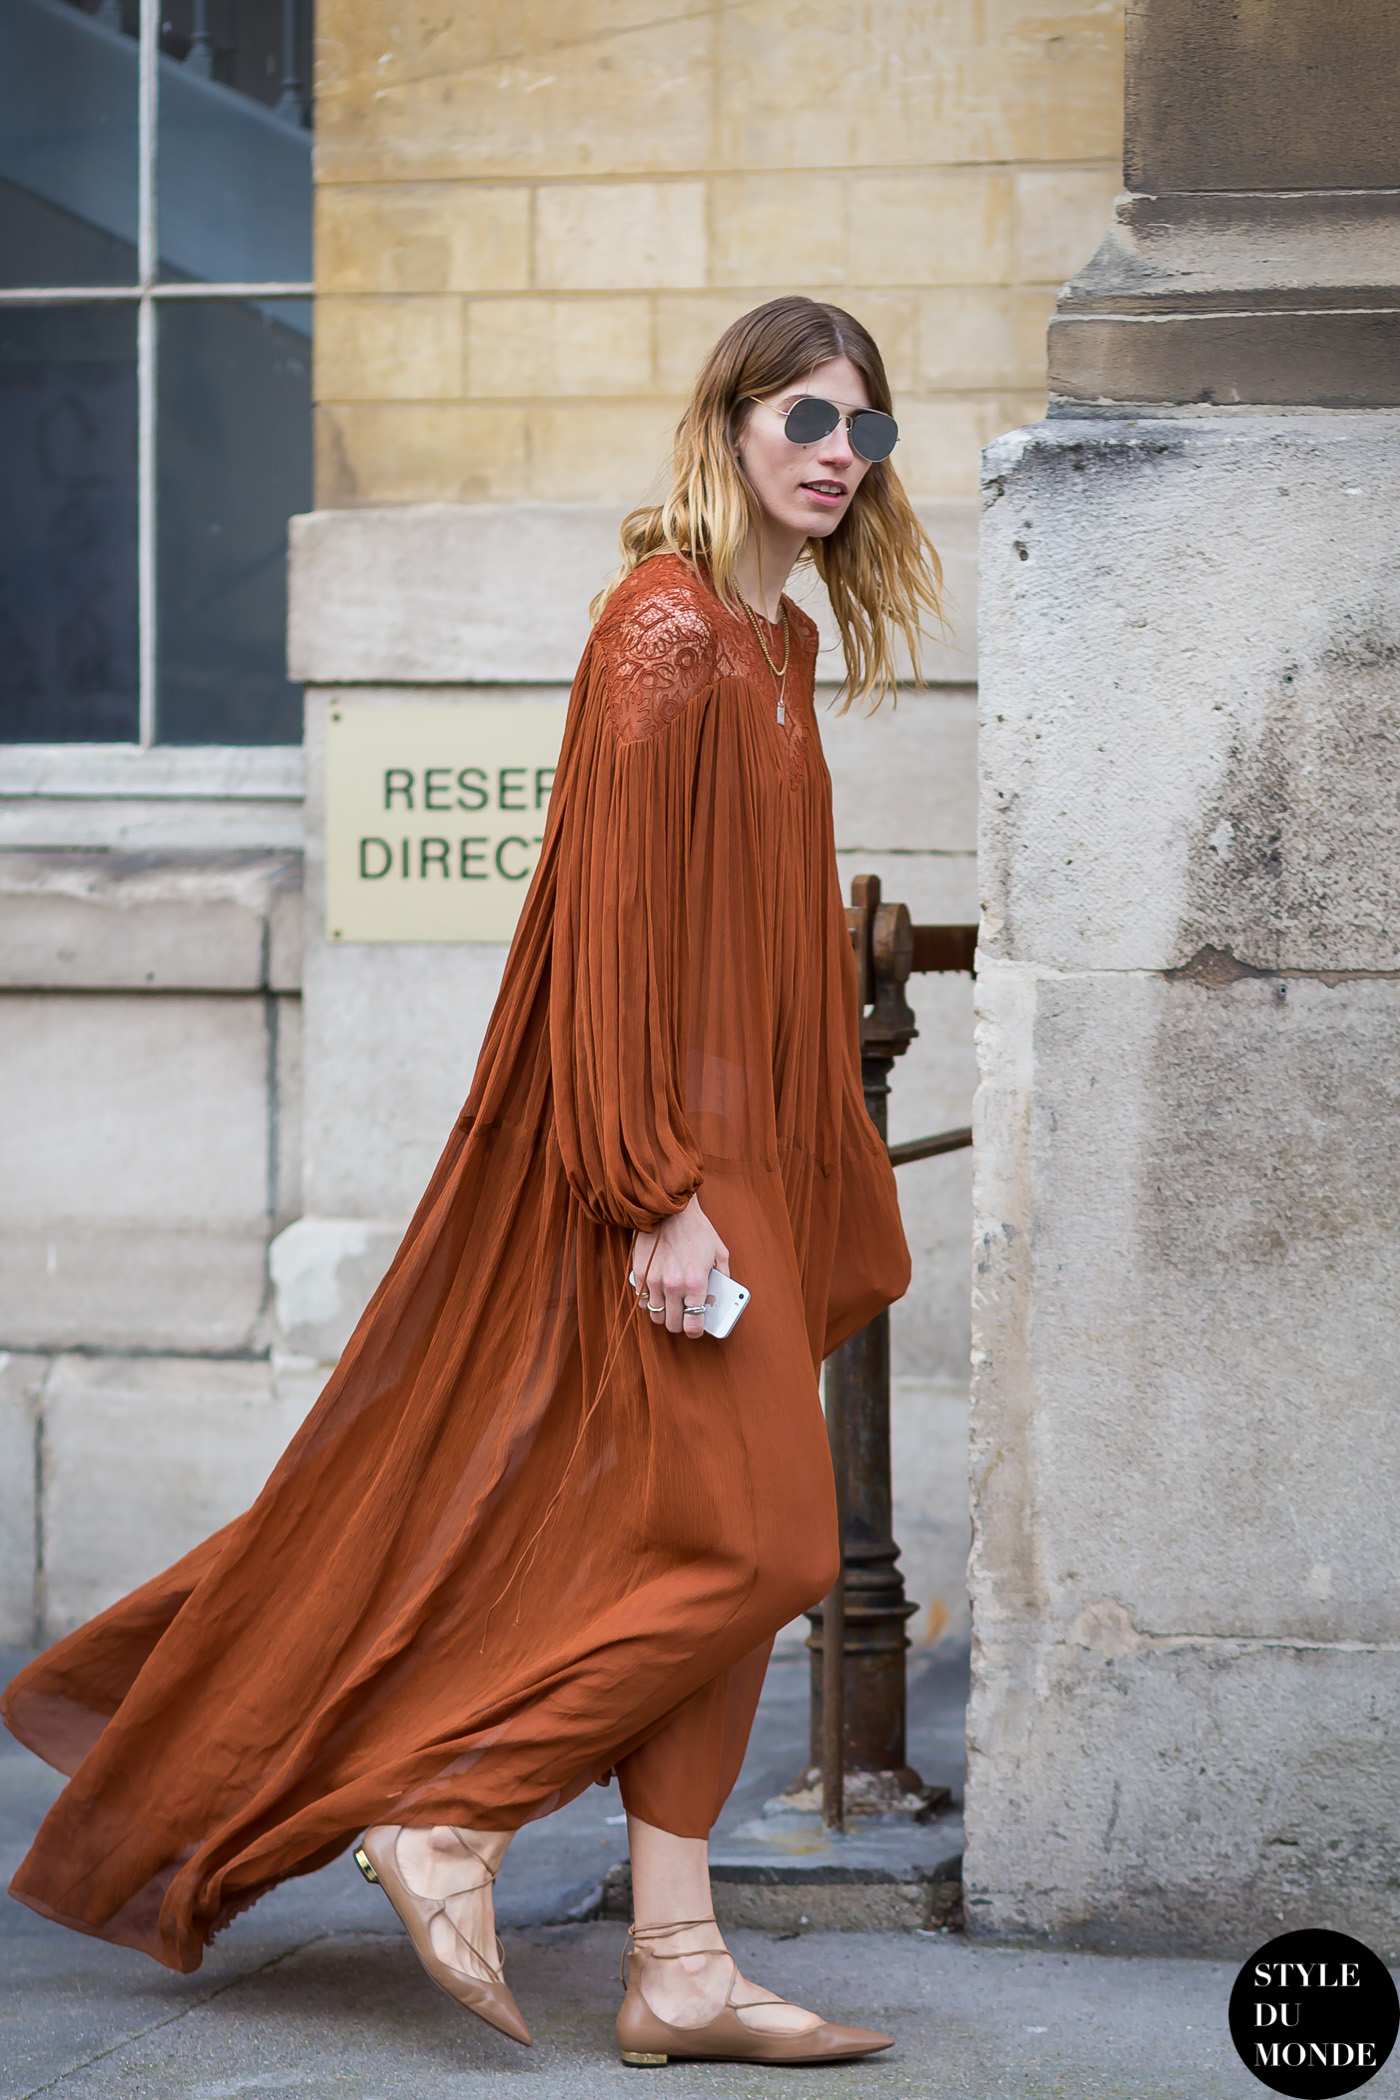 Veronika-Heilbrunner-by-STYLEDUMONDE-Street-Style-Fashion-Blog_MG_8305